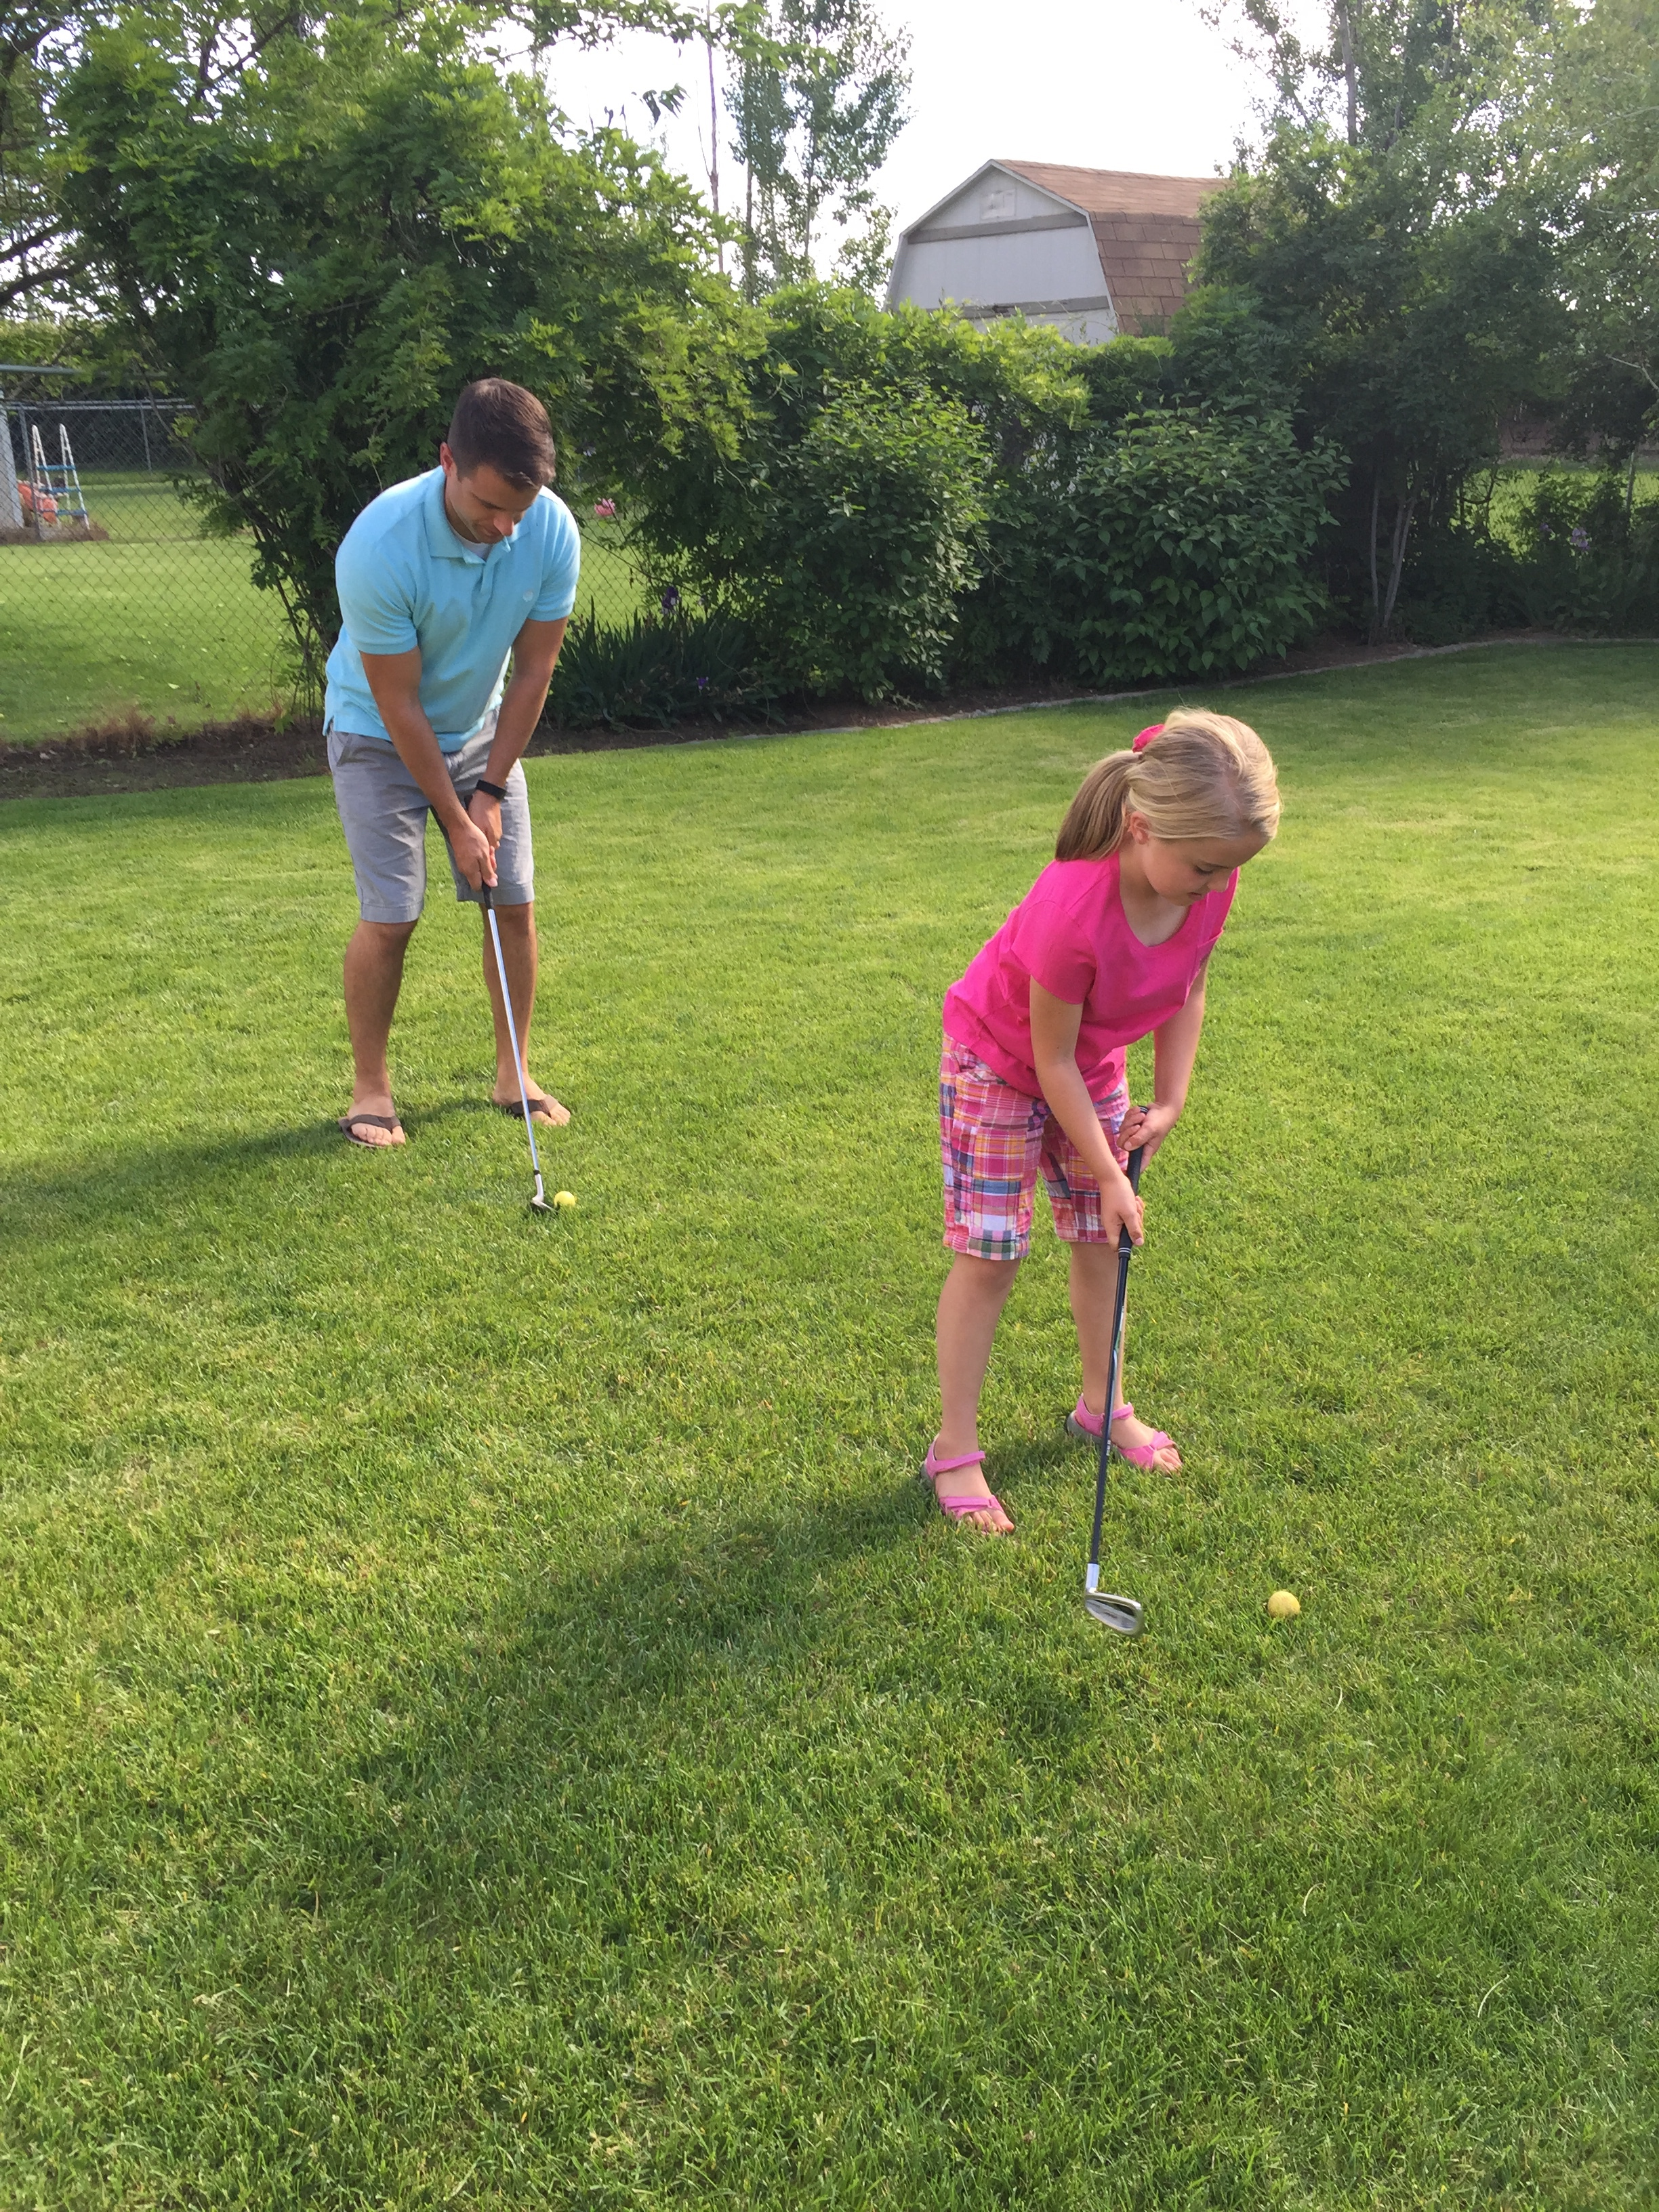 10 Best Outdoor Games For Families